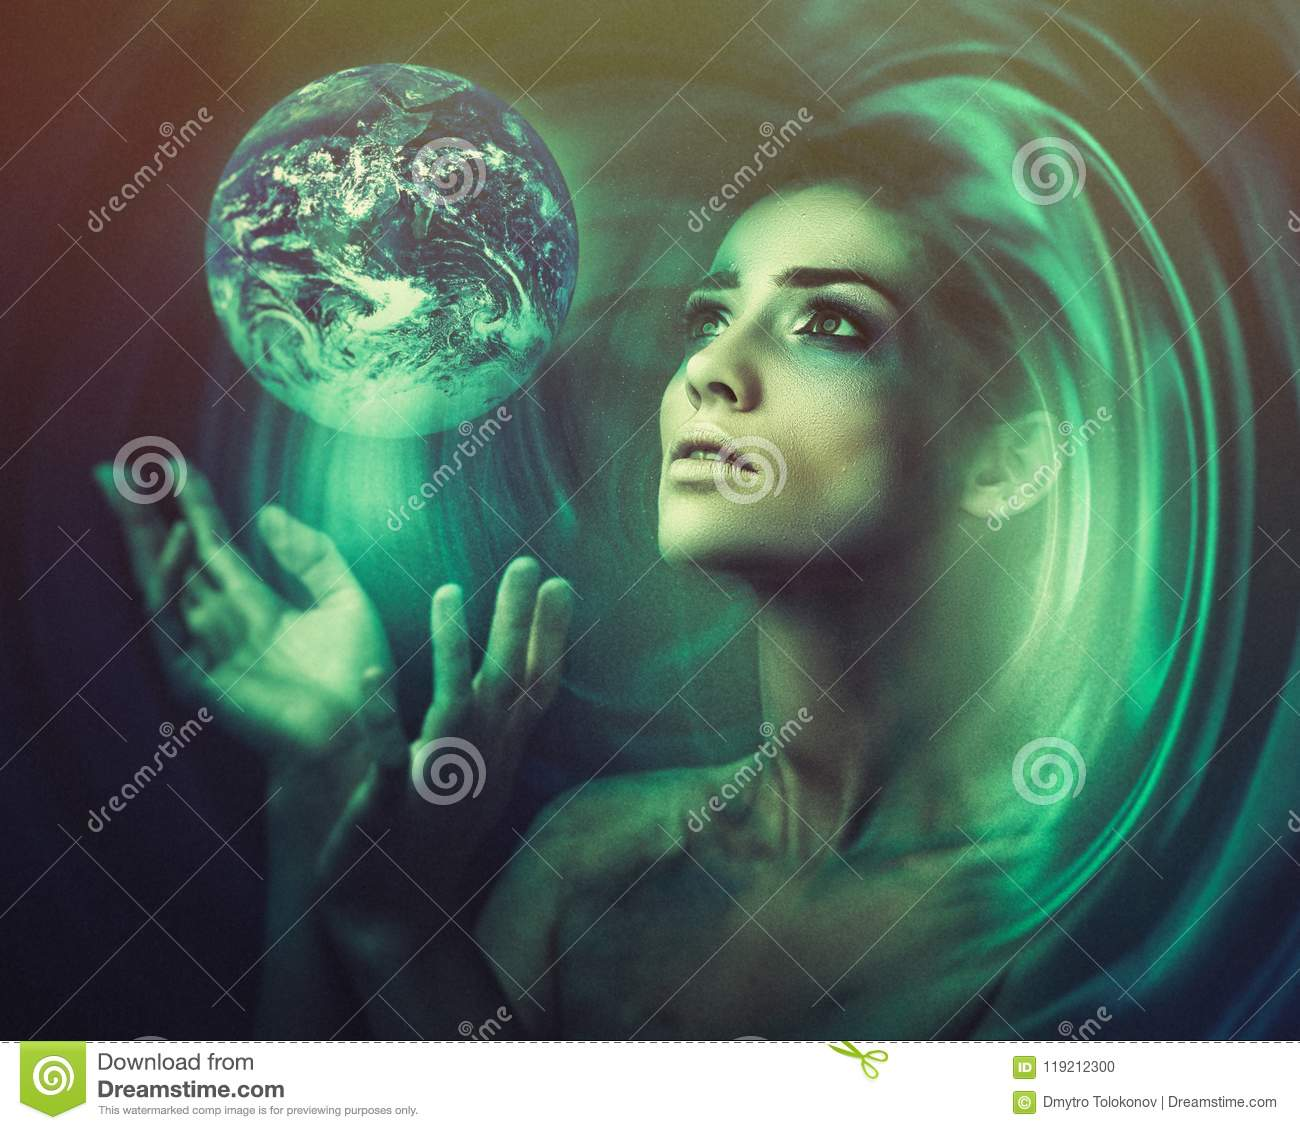 Blue Earth in her hands. Birth of a new universe.